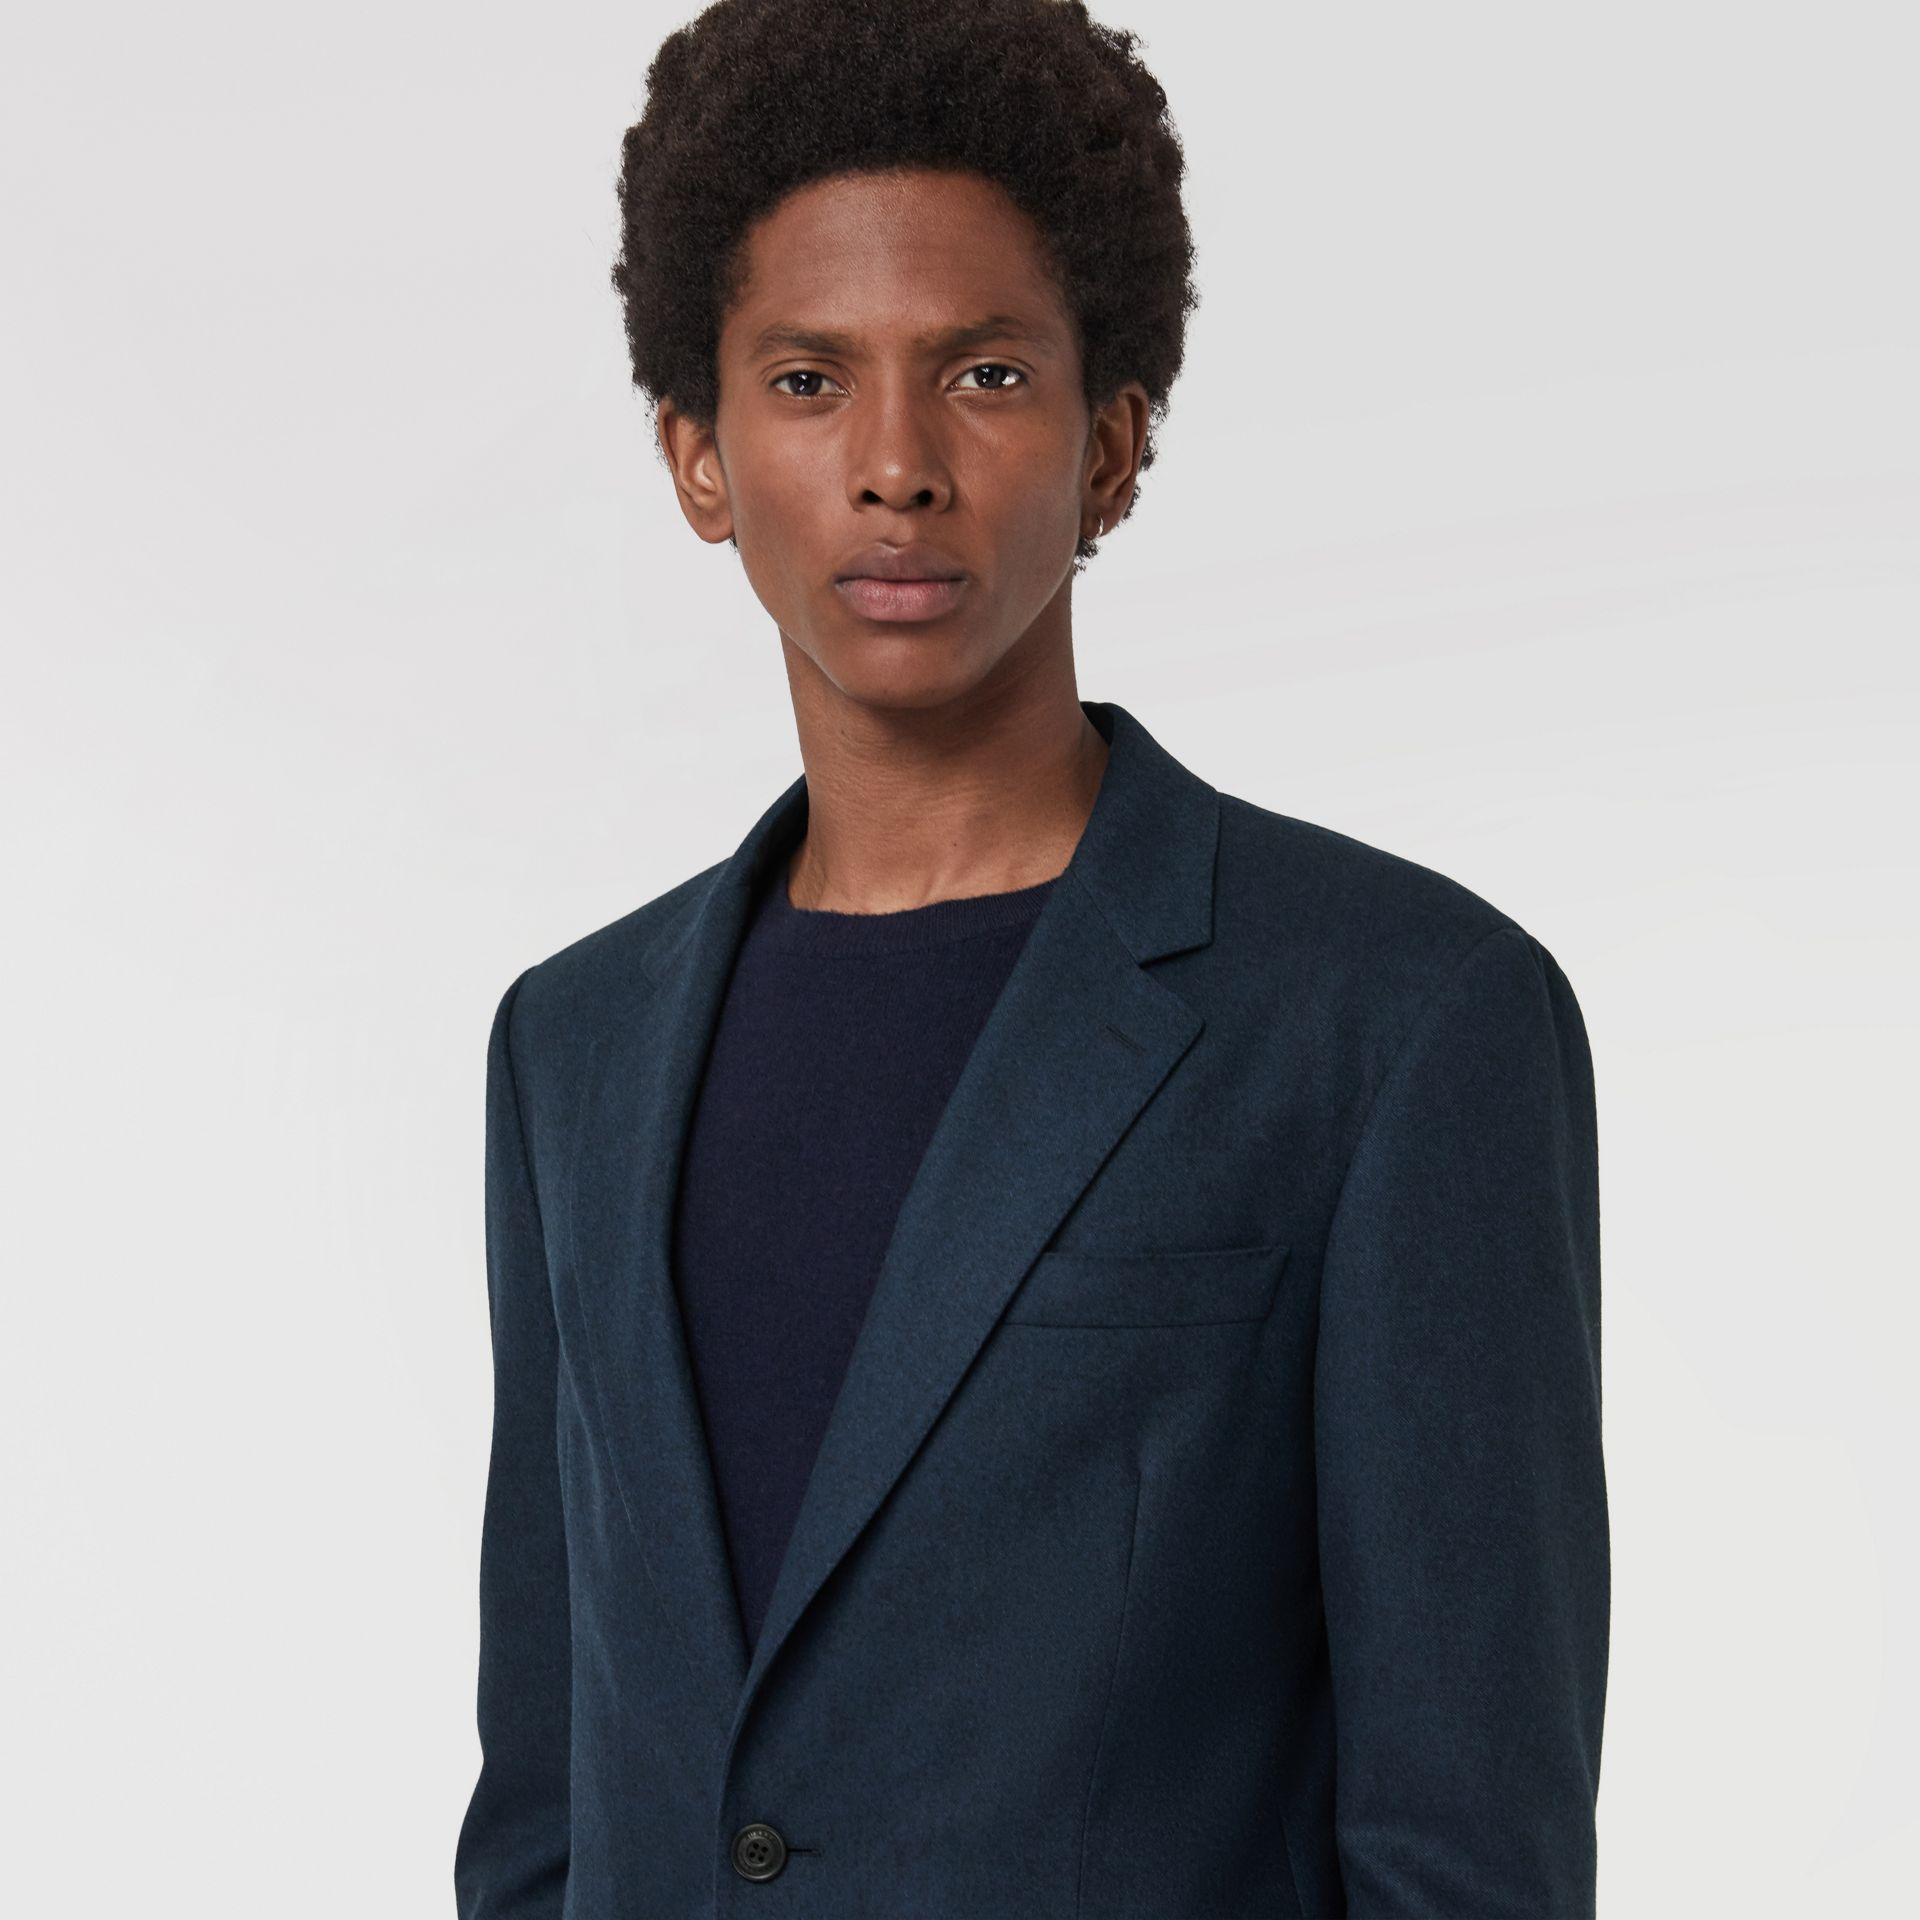 Classic Fit Wool Cashmere Tailored Jacket in Dark Teal - Men | Burberry - gallery image 1